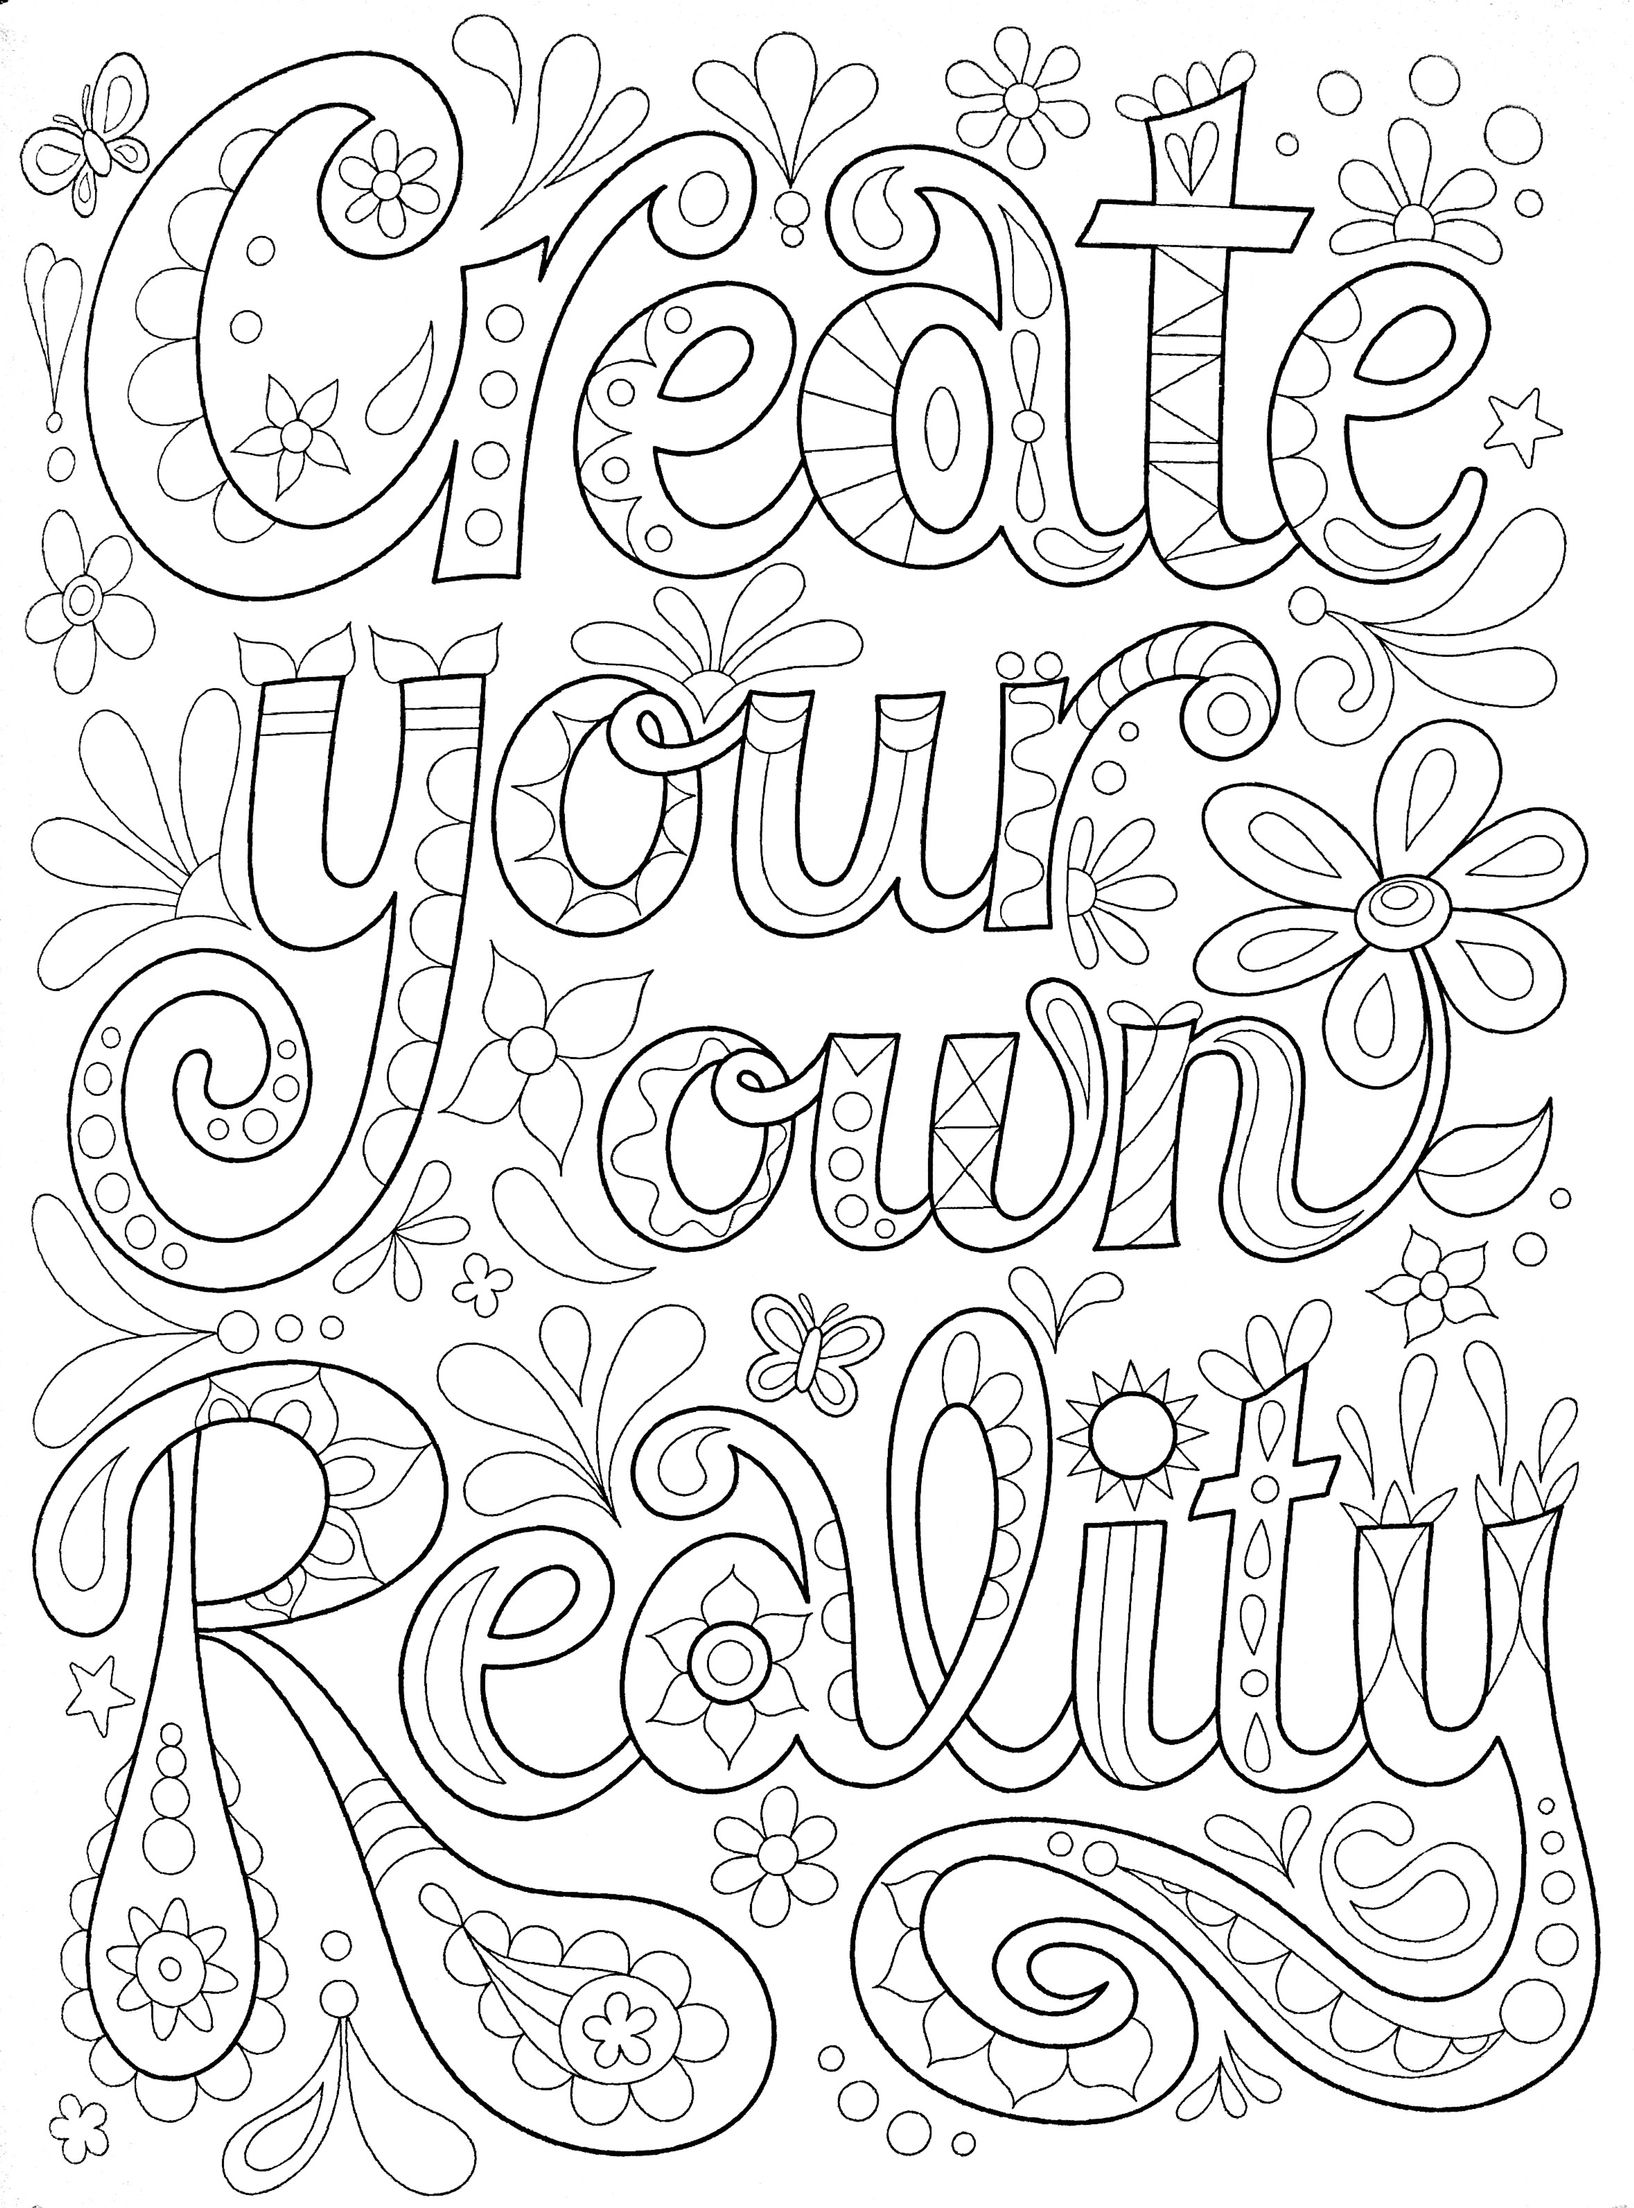 Adult Coloring Page Quote Coloring Pages Coloring Pages Free